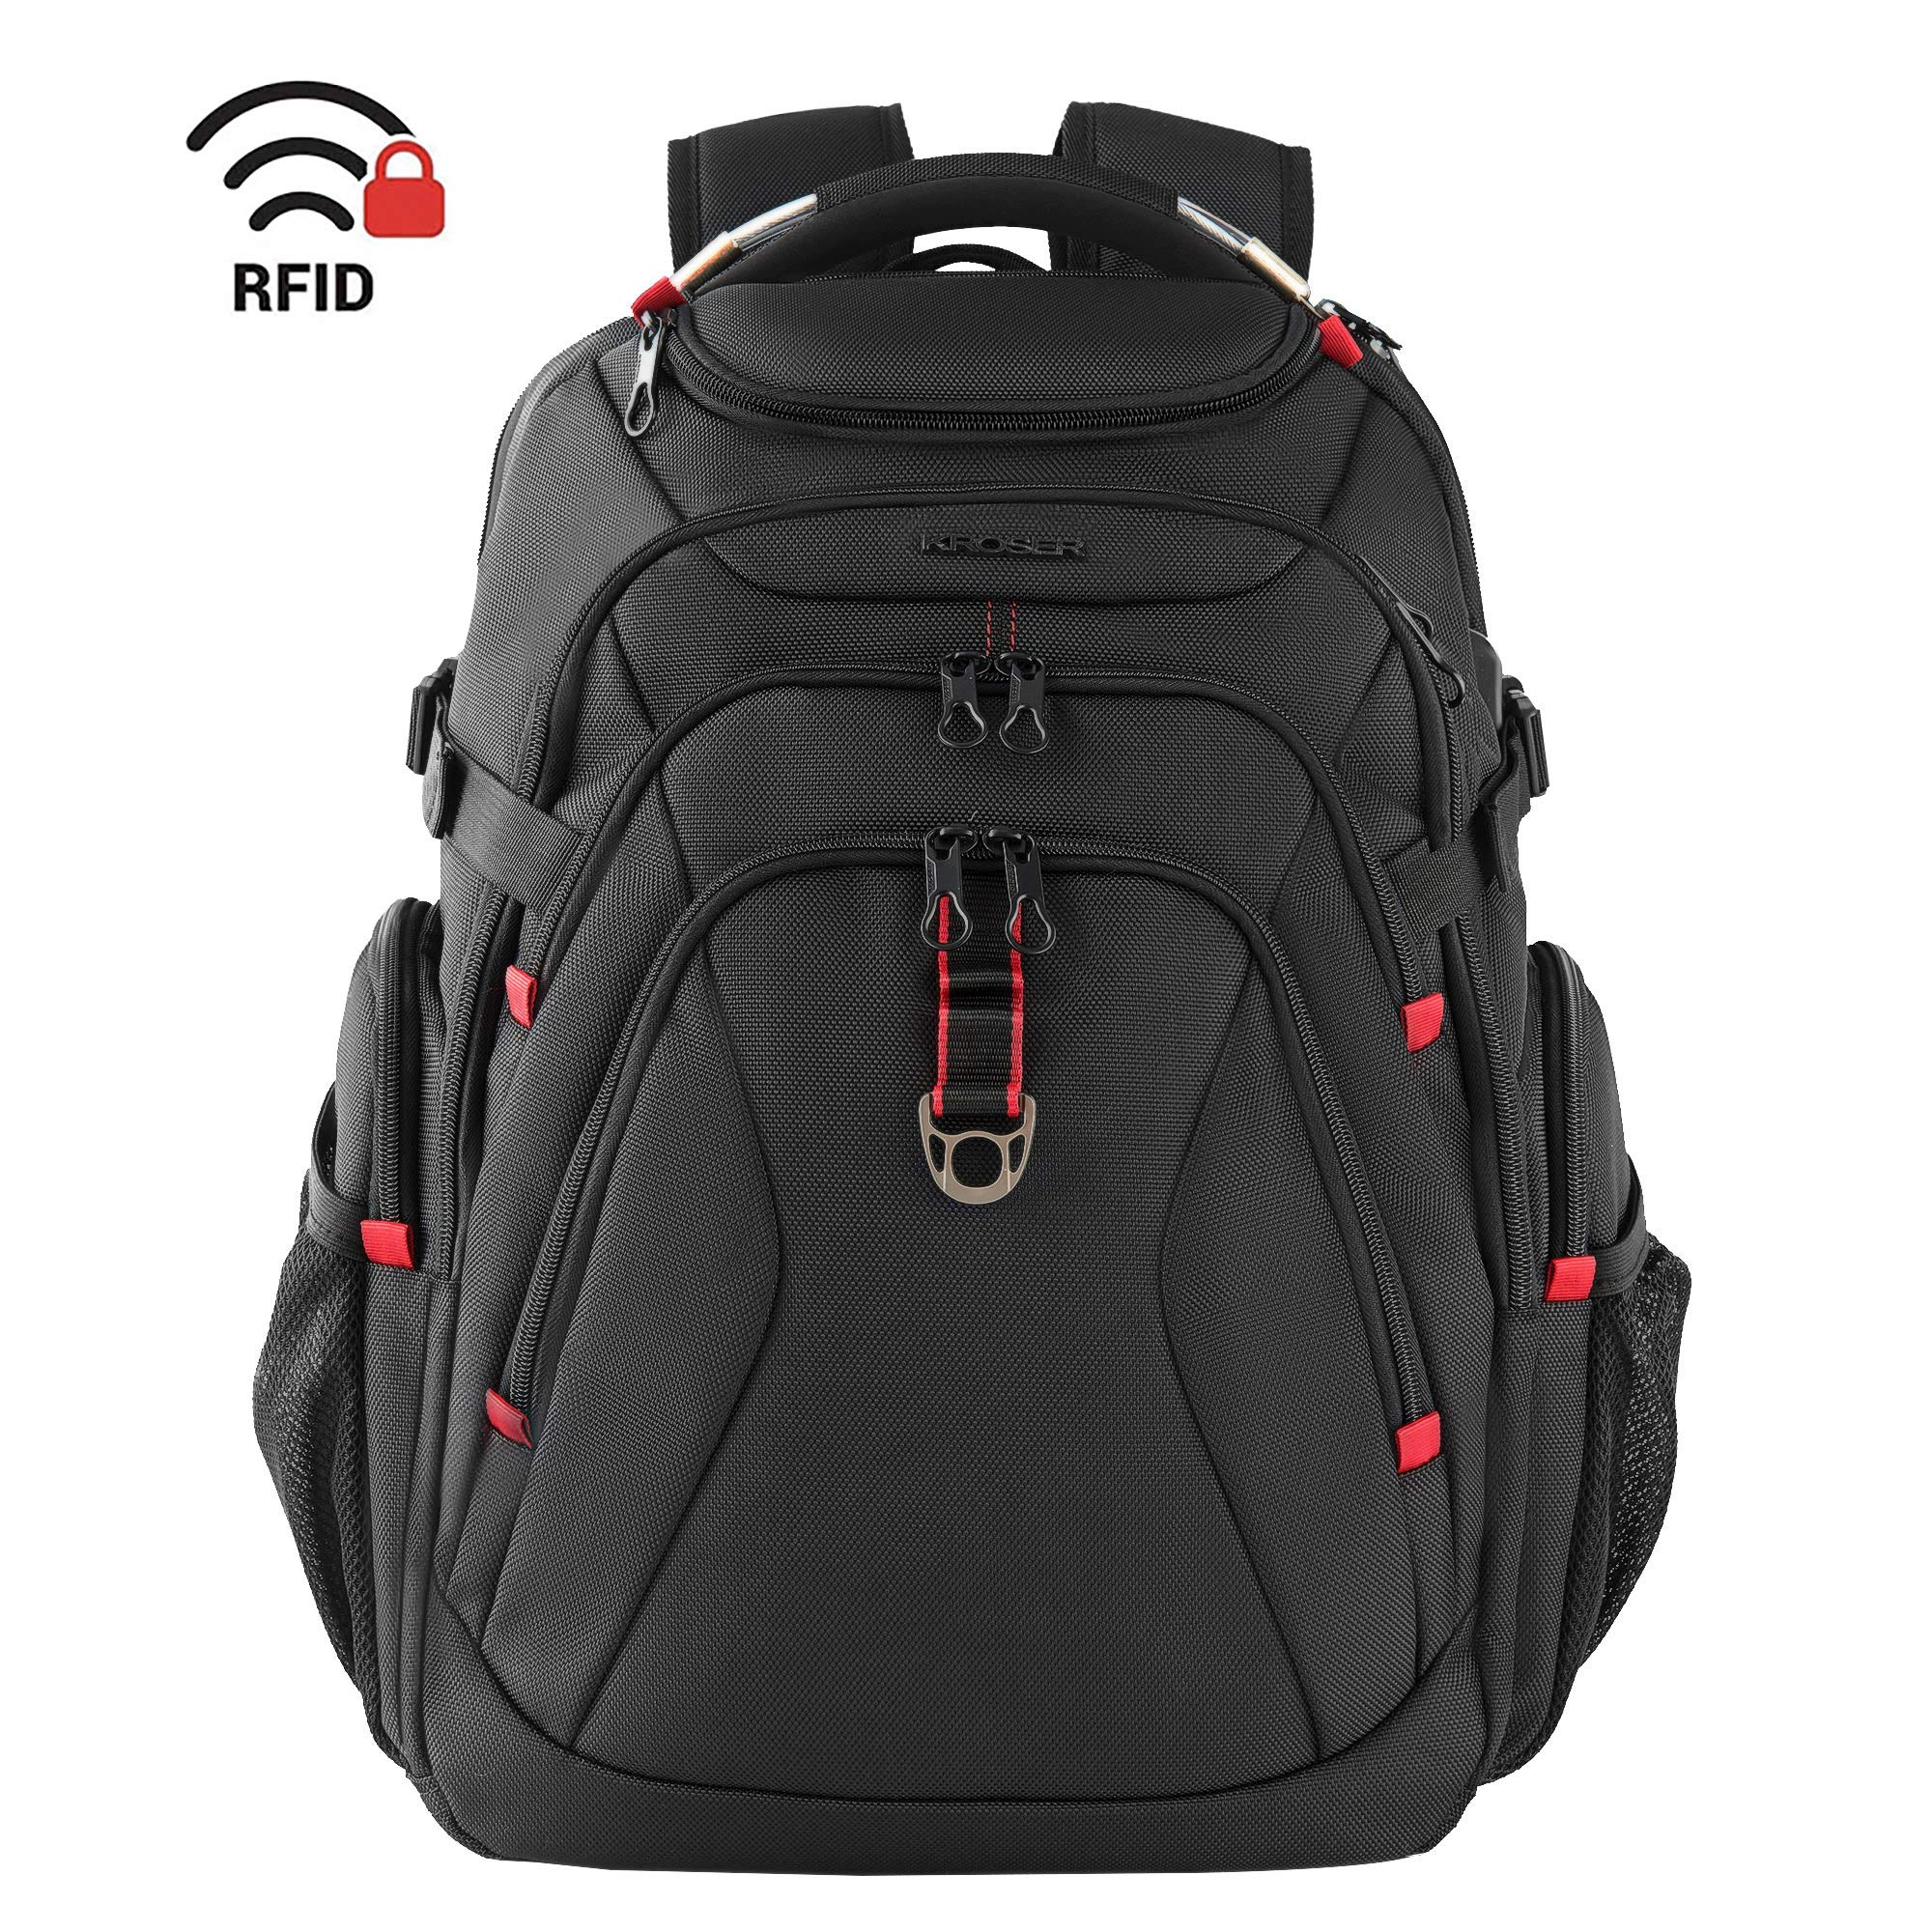 KROSER Travel Laptop Backpack 17.3 Inch XL Heavy Duty Computer Backpack with USB Charging Port RFID Pockets Water-Repellent Business College Daypack Stylish Big School Laptop Bag for Men/Women-Black by KROSER (Image #1)